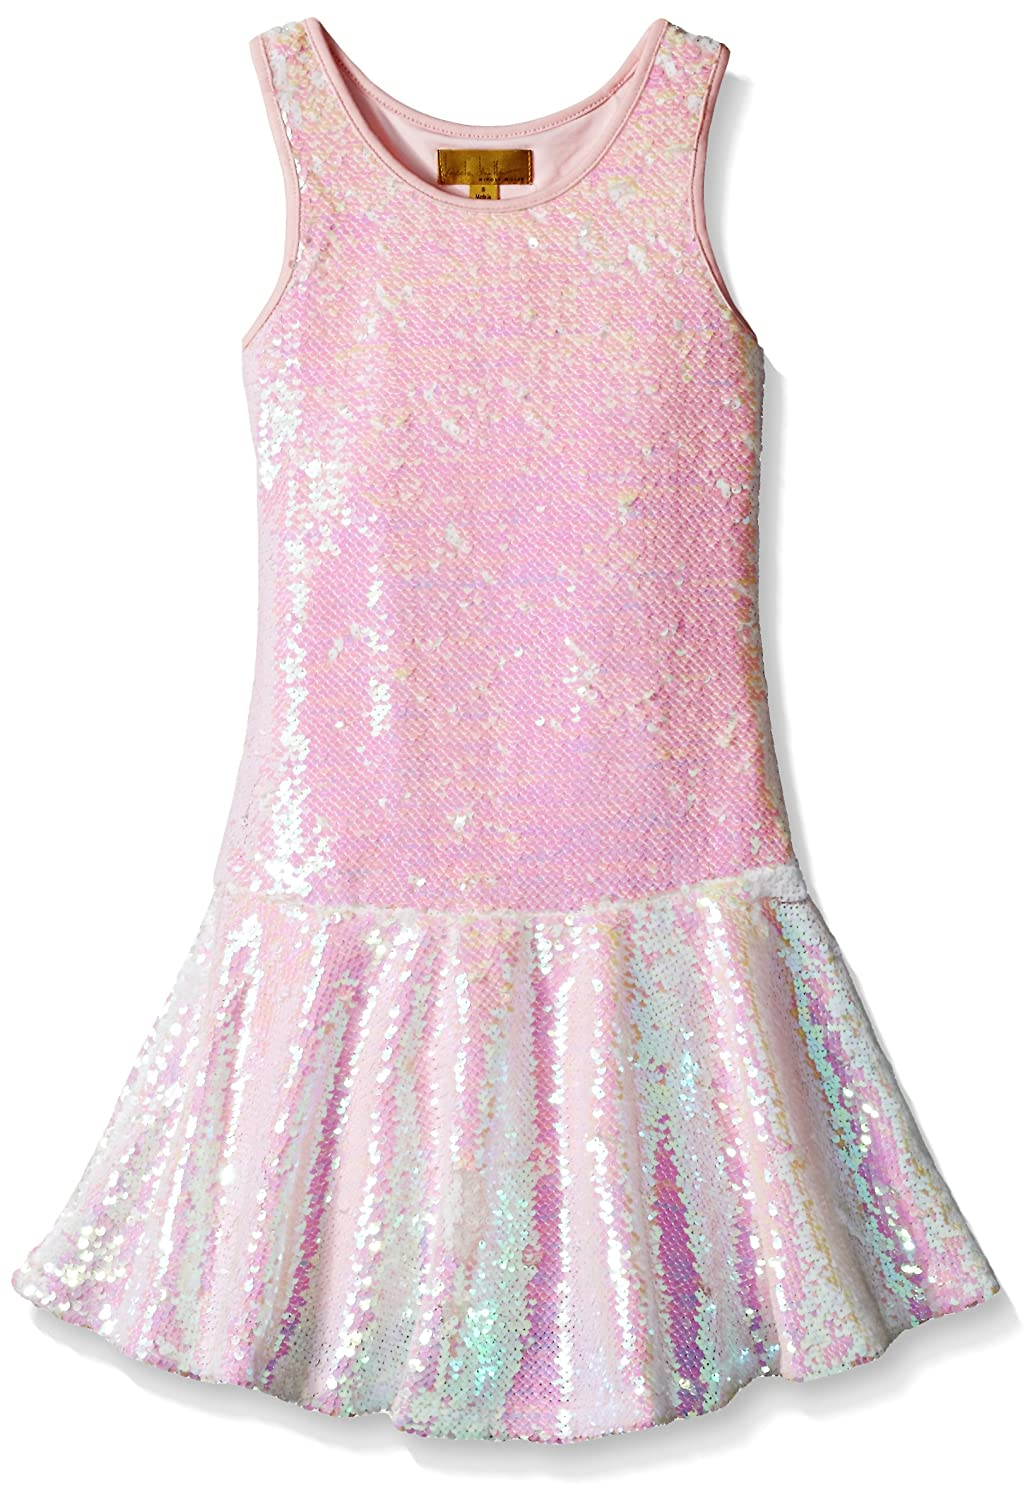 1920s Children Fashions: Girls, Boys, Baby Costumes Iridescent Sequin Dress $84.99 AT vintagedancer.com